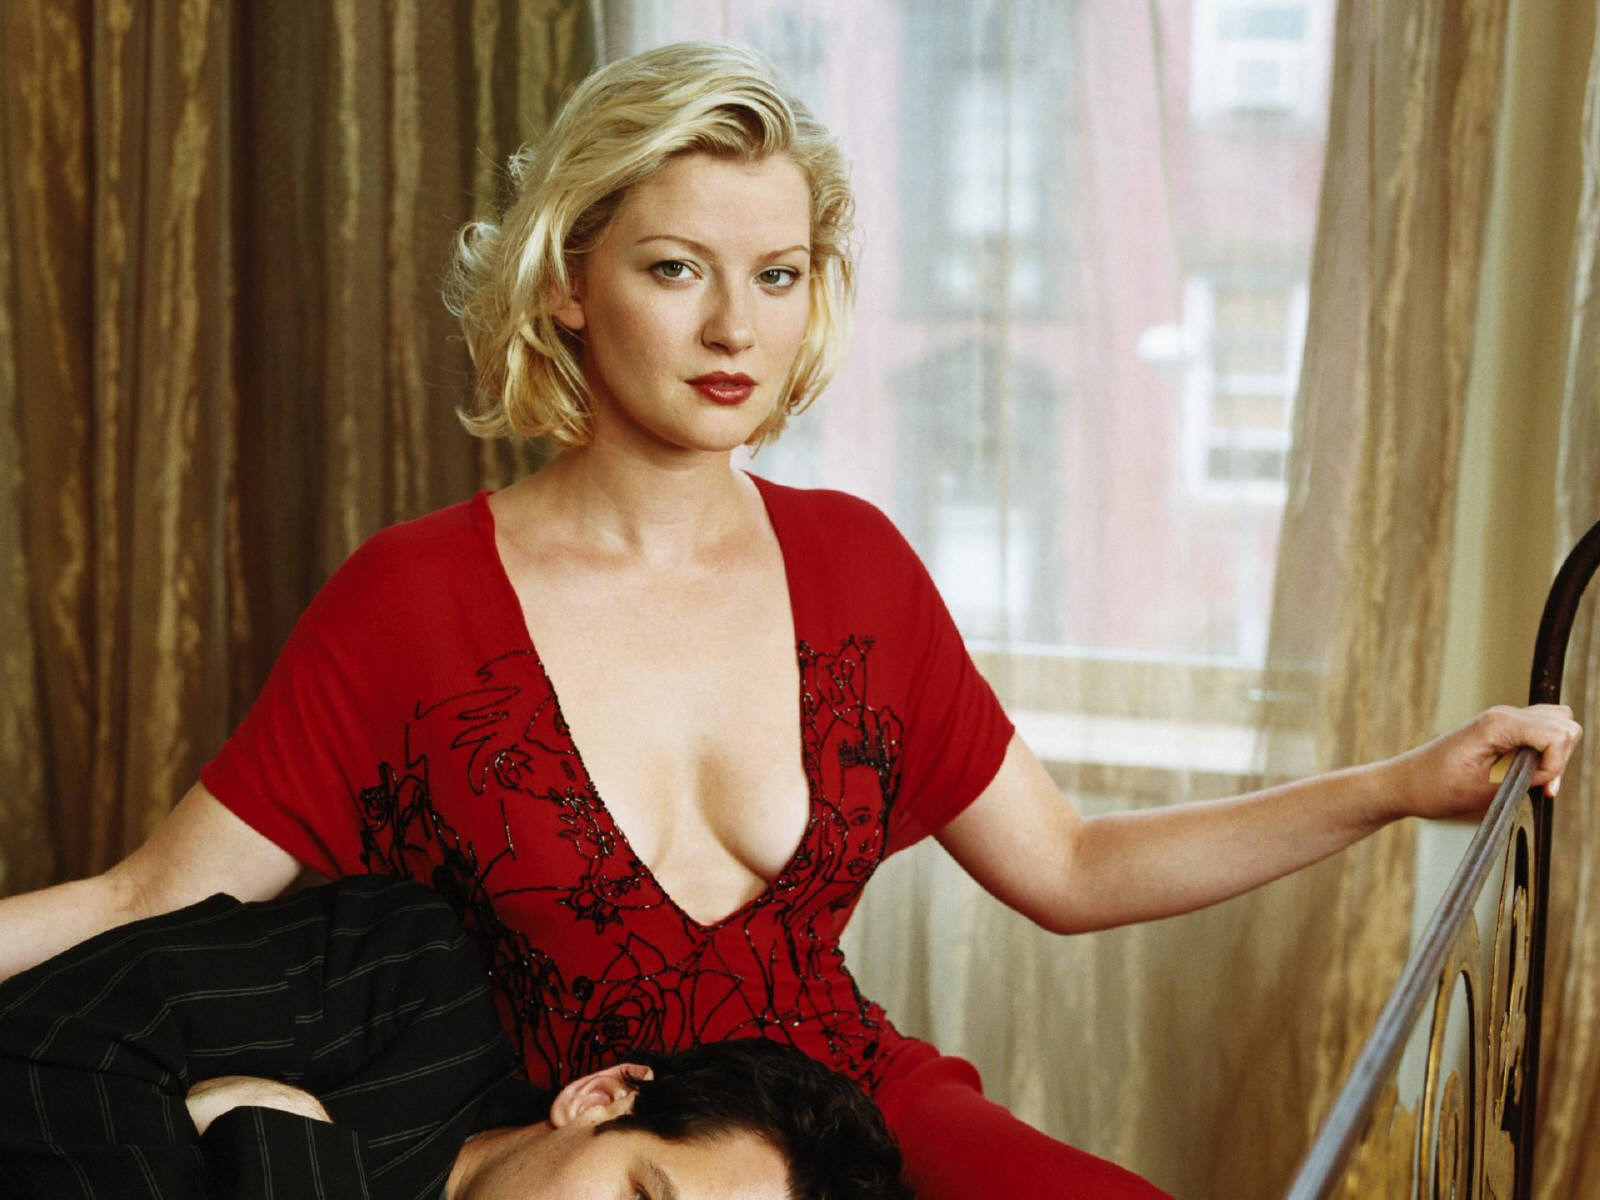 Gretchen mol hot